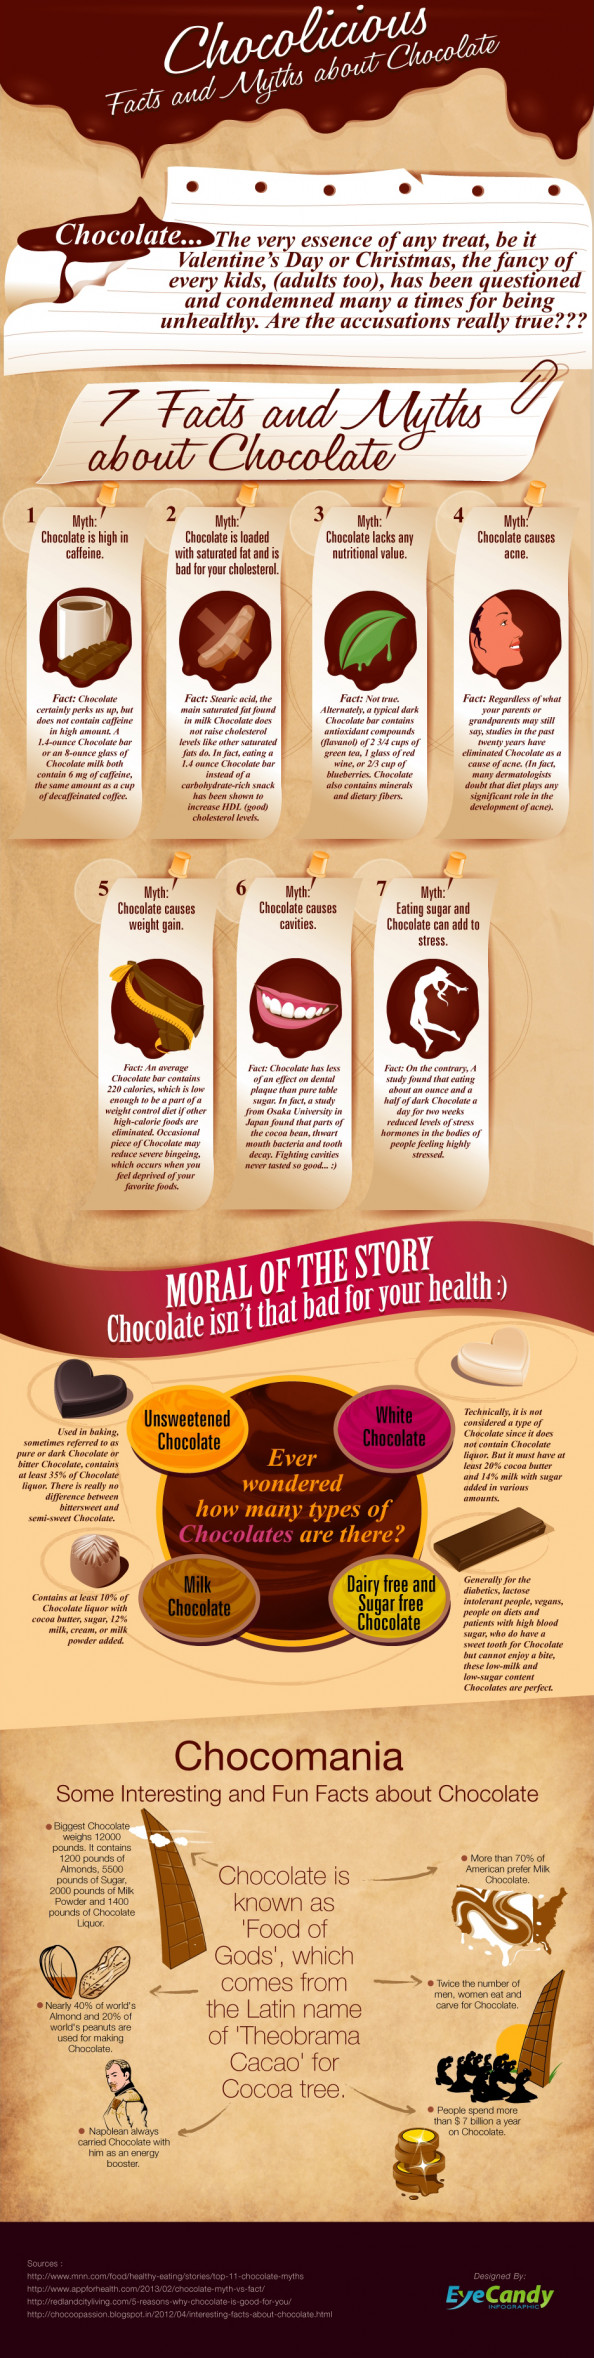 Chocolicious - Facts and Myths about Chocolate | Visual.ly